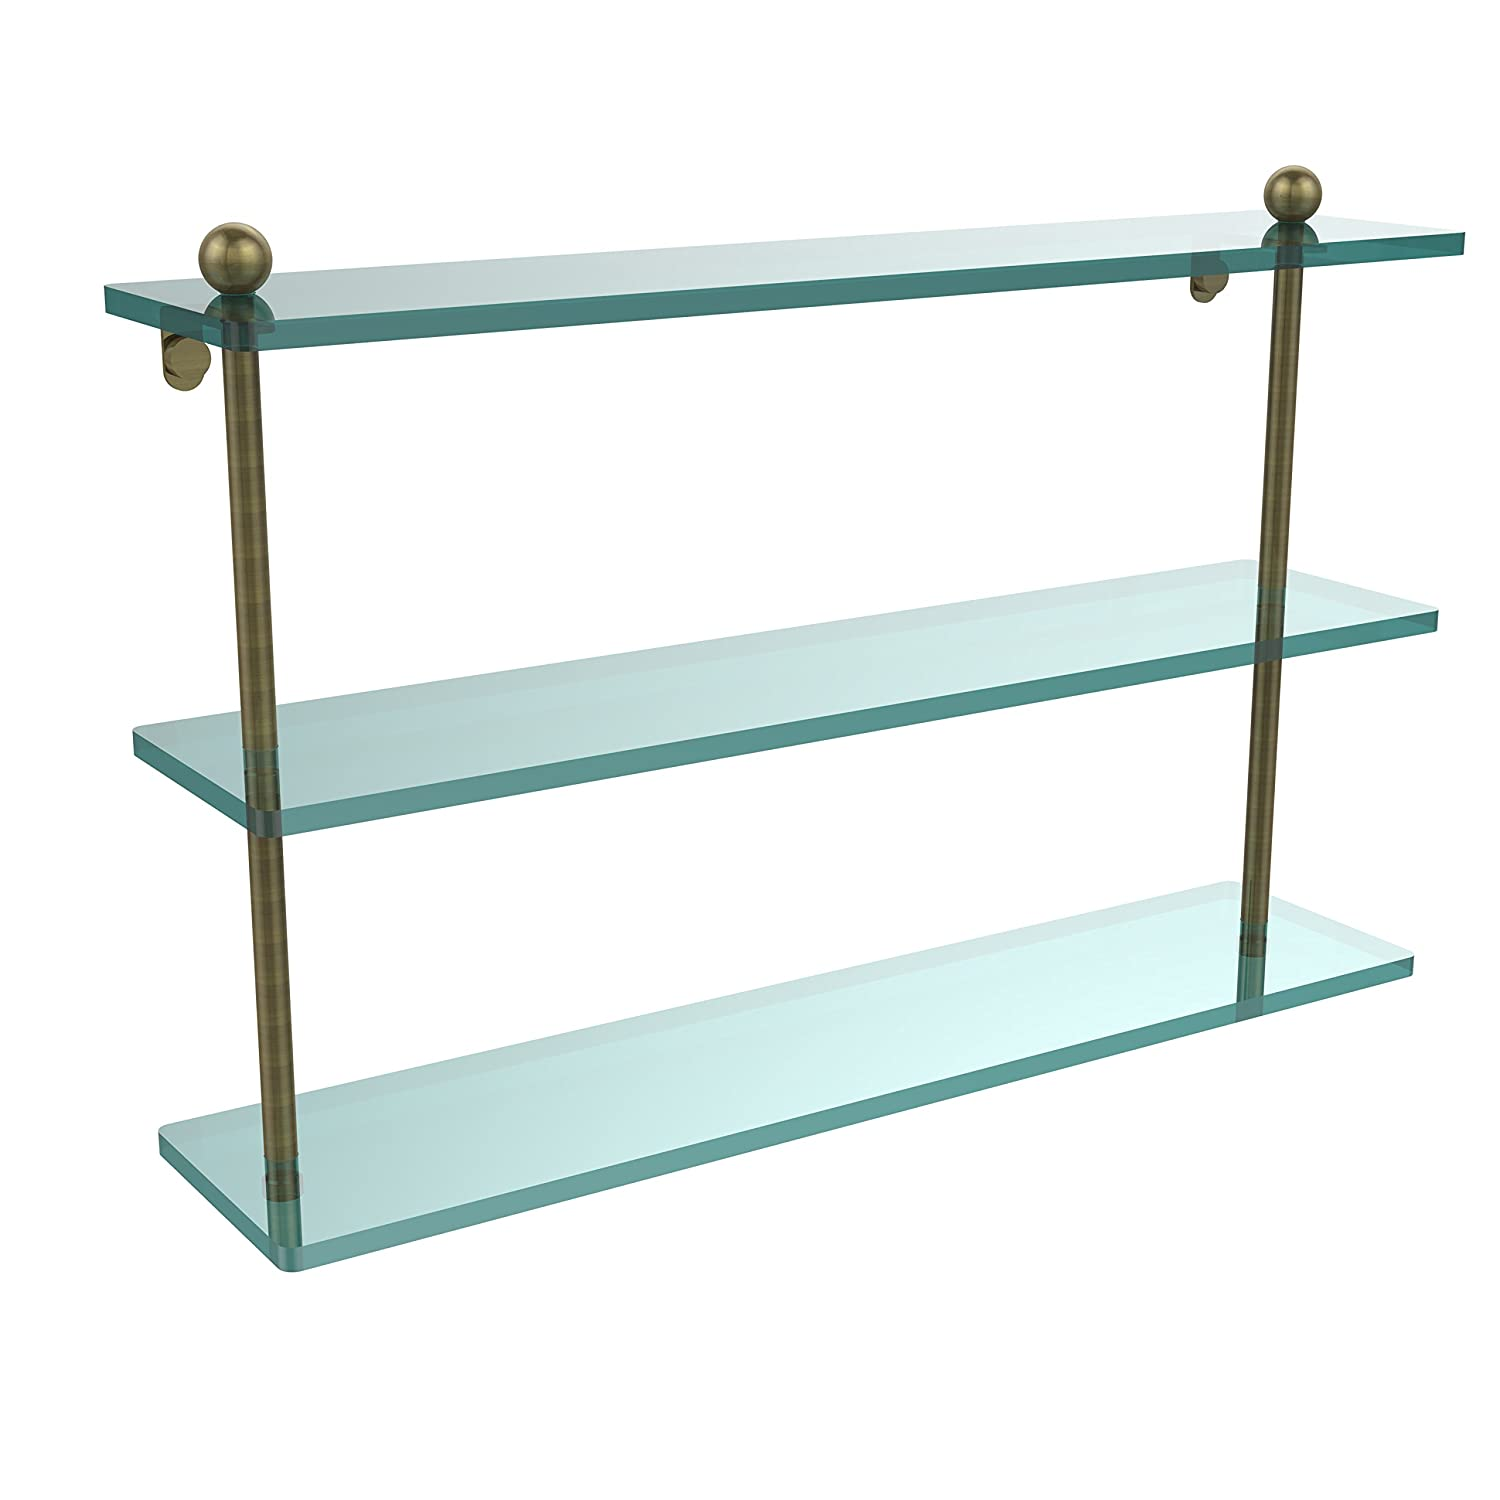 Allied Brass PR-5/22-ABR 22 Triple Glass Shelf Antique Brass by Allied Brass B0031124QS  アンティーク真鍮